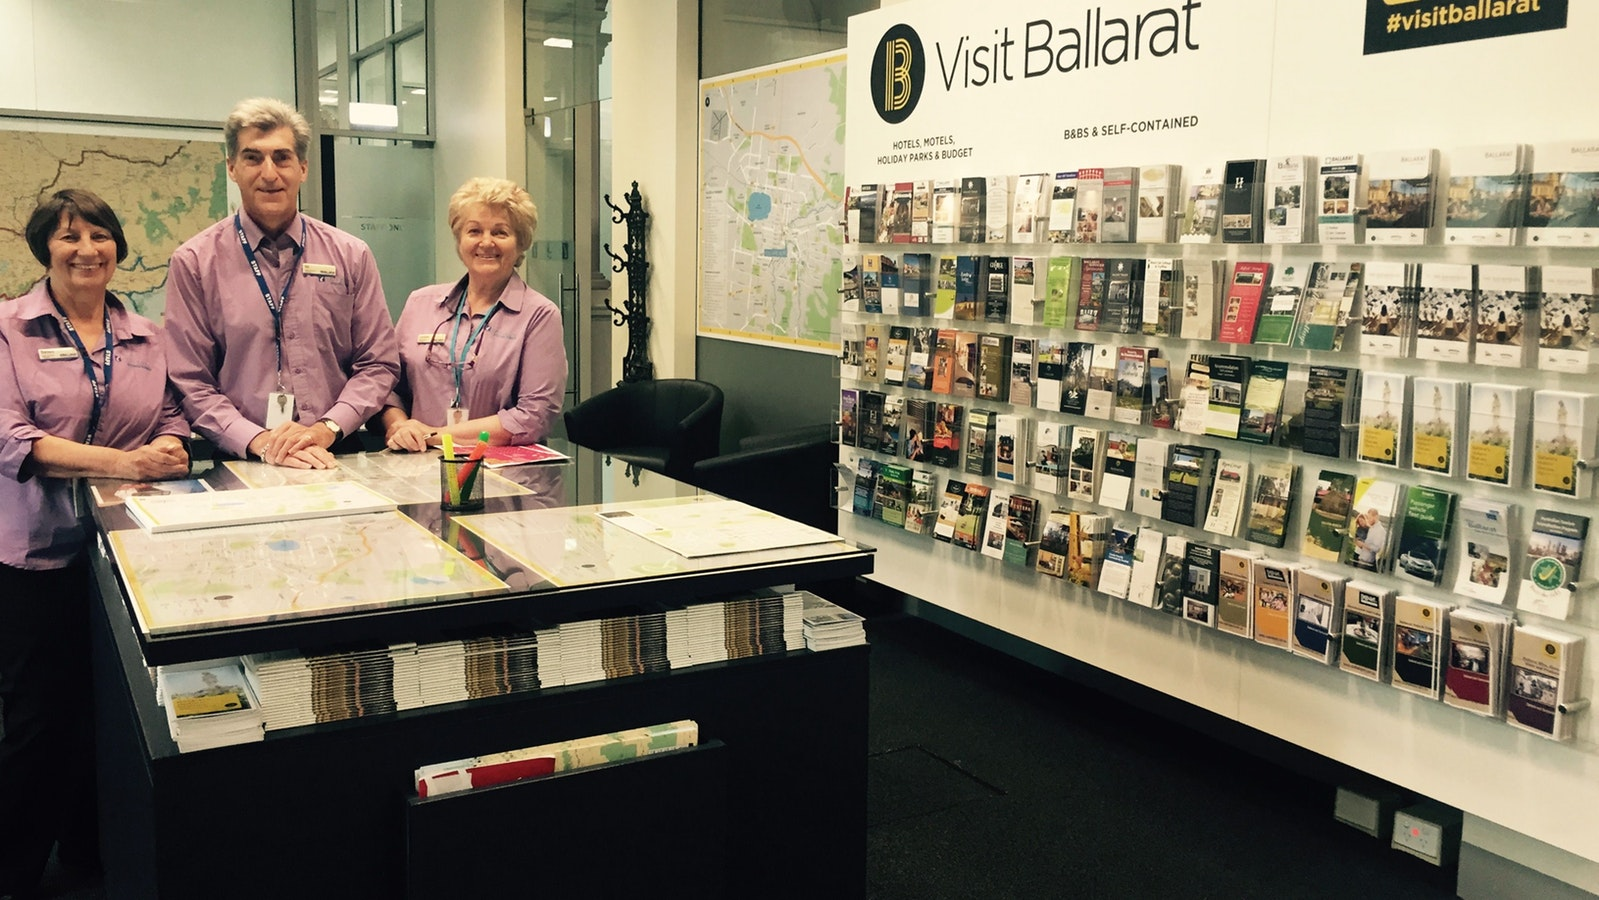 Ballarat Visitor Information Centre